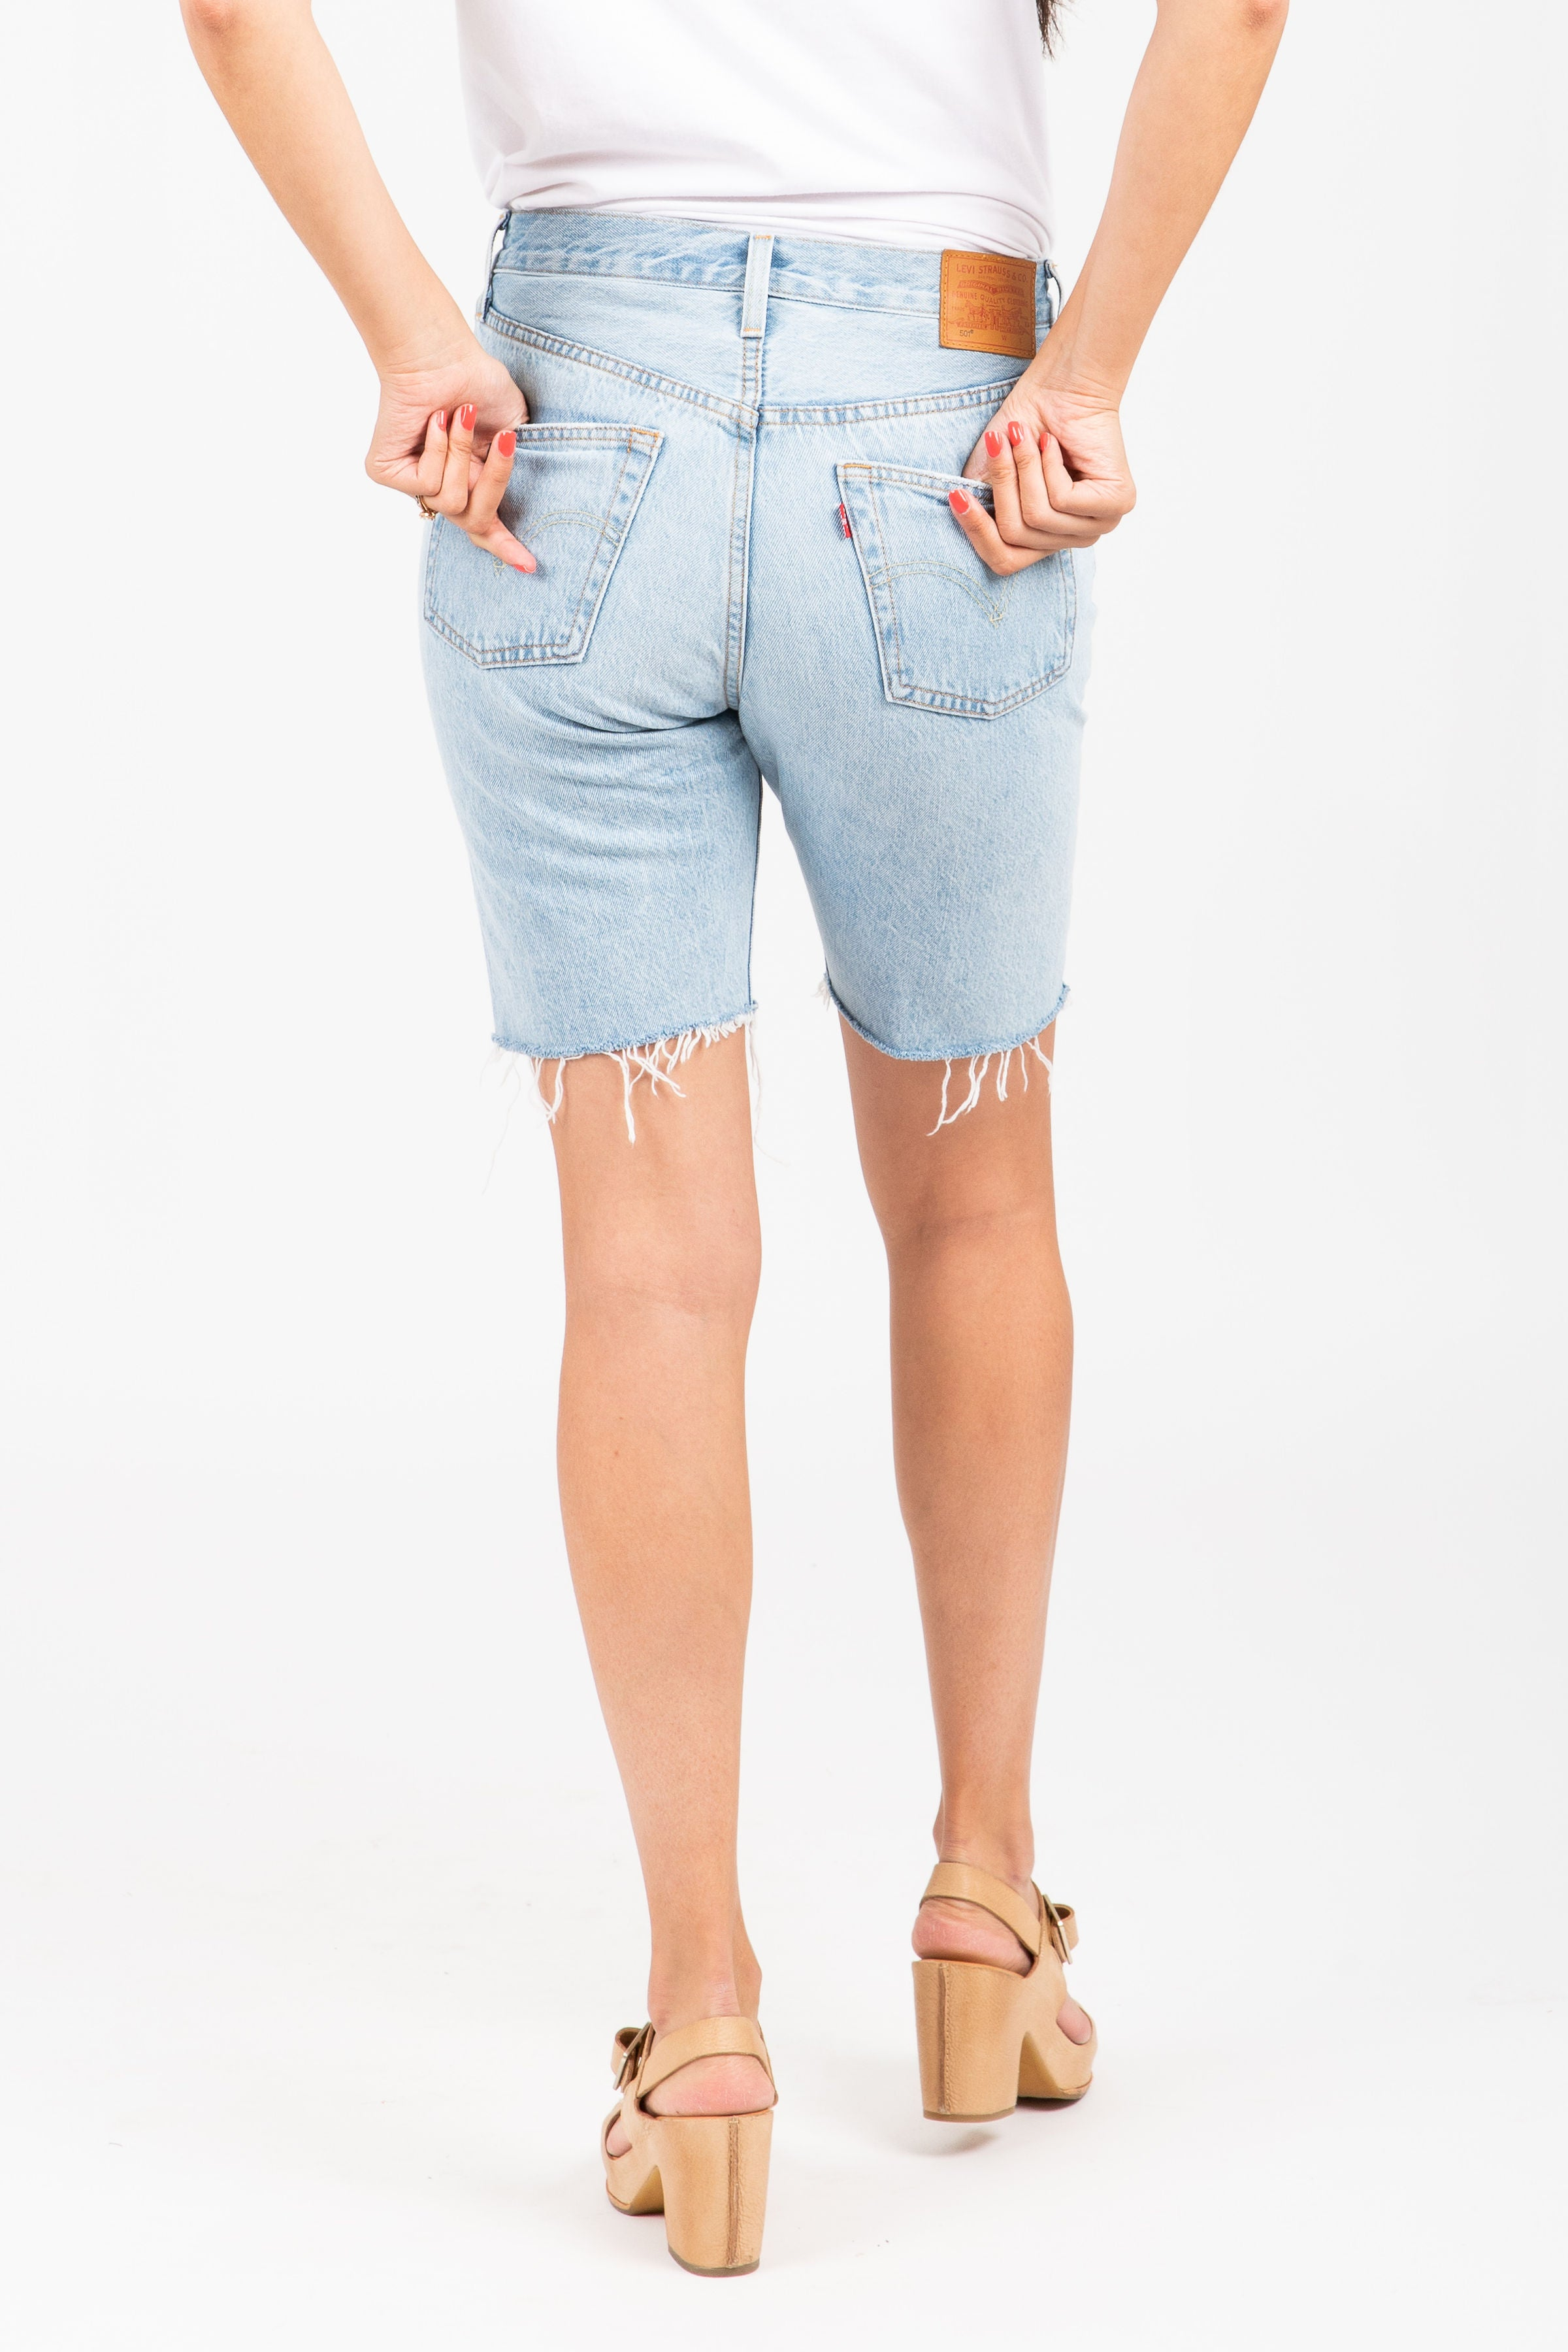 Levi's: 501 Slouch Short in Slouch Around